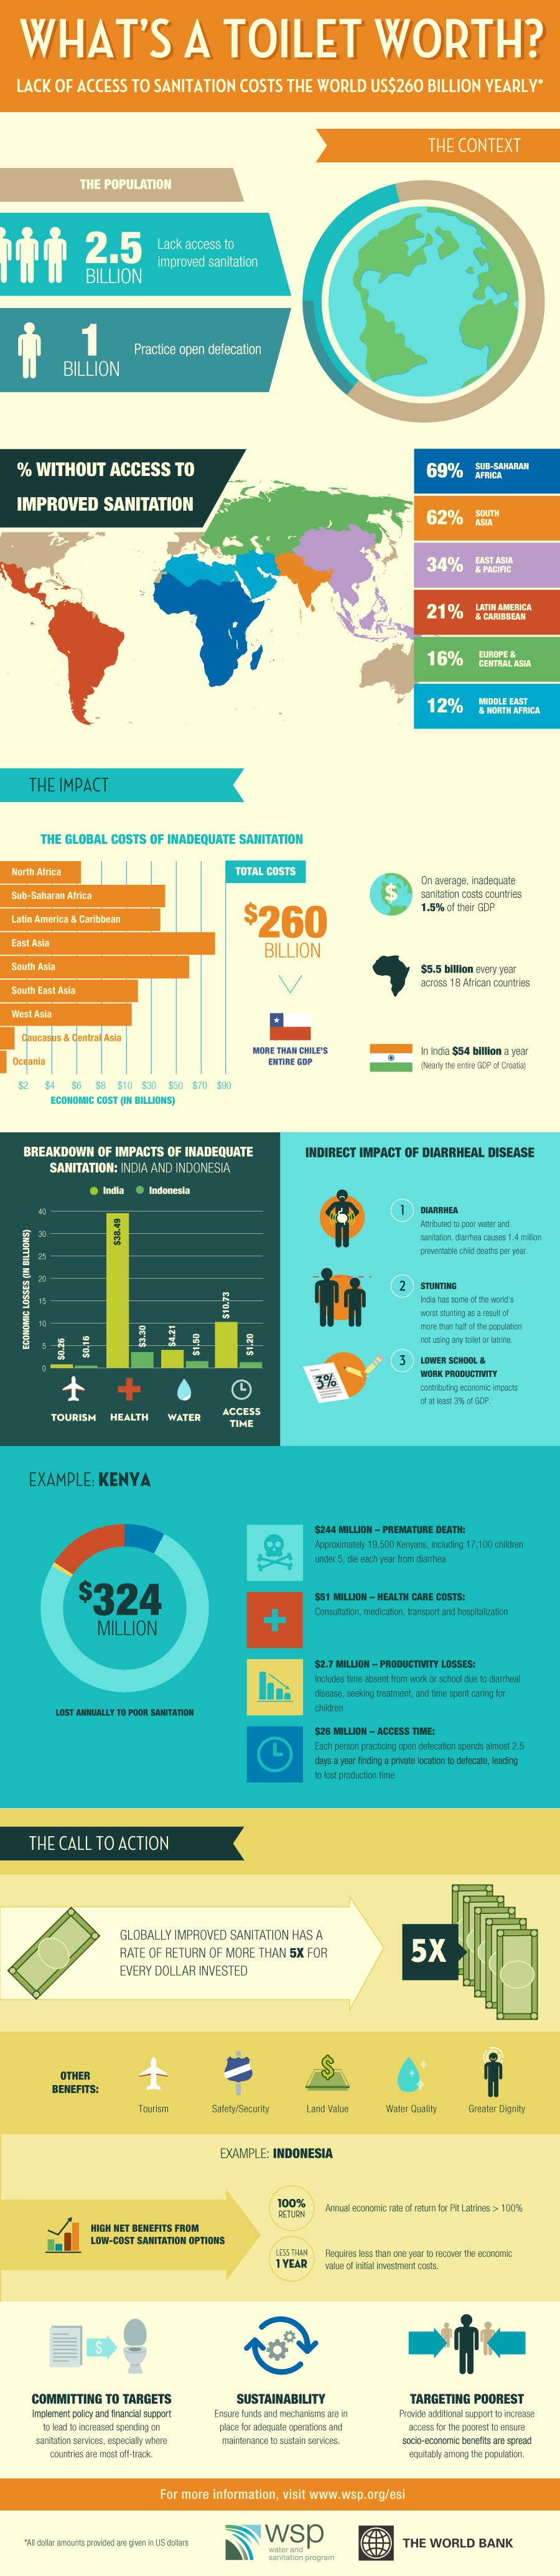 infographic-sanitation-esi-900x4140.jpg